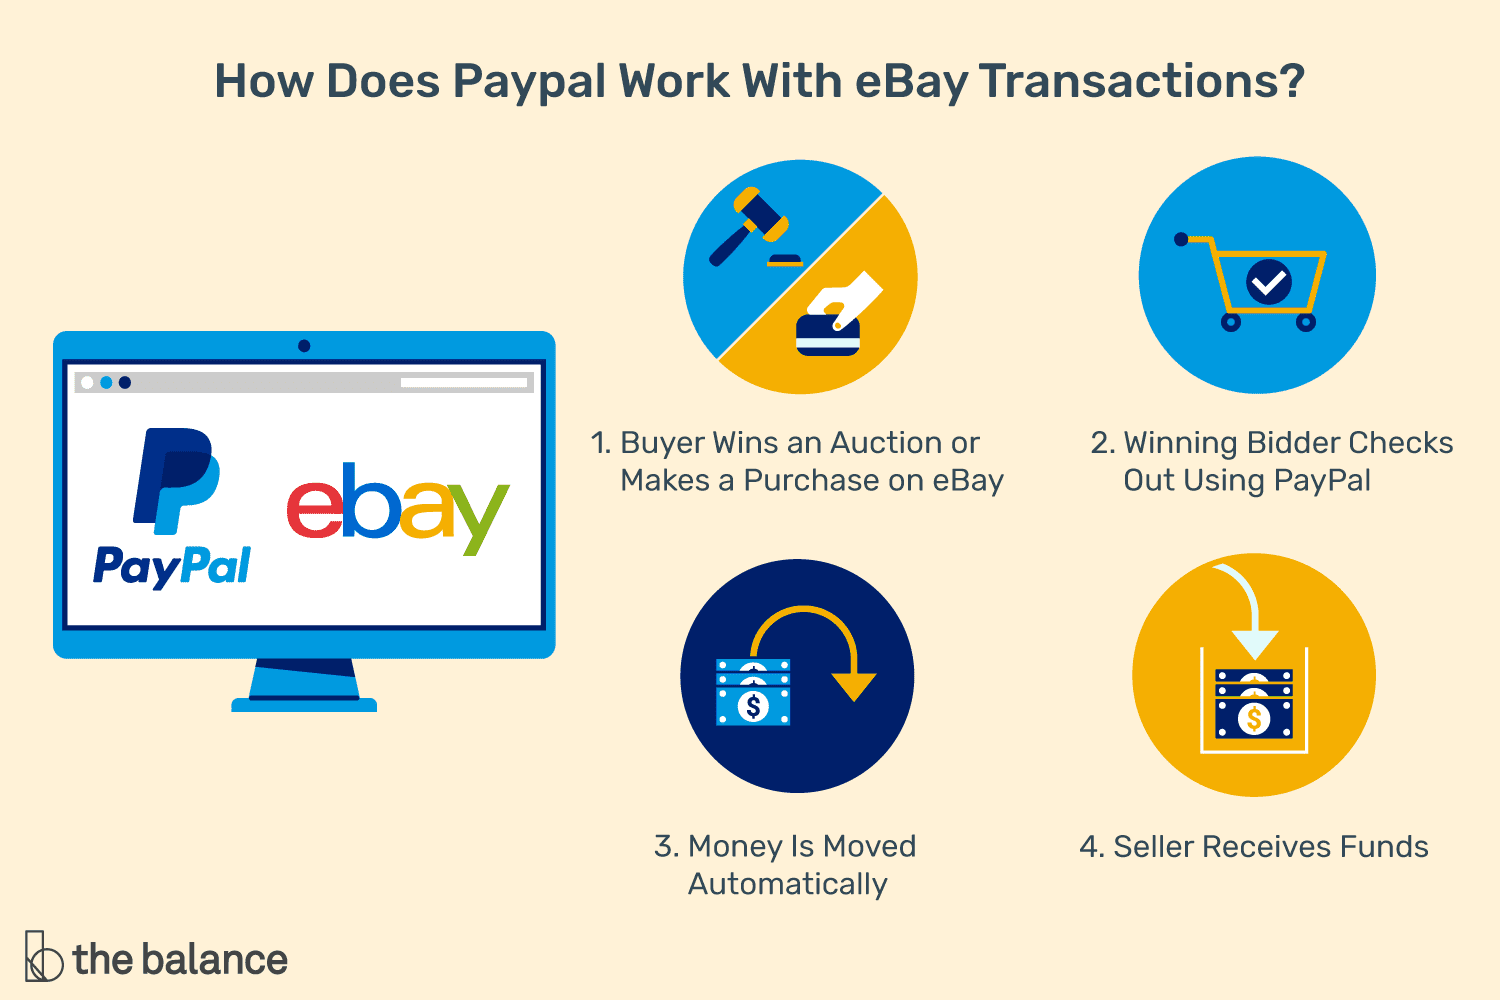 What Is PayPal and How Does It Work With eBay?